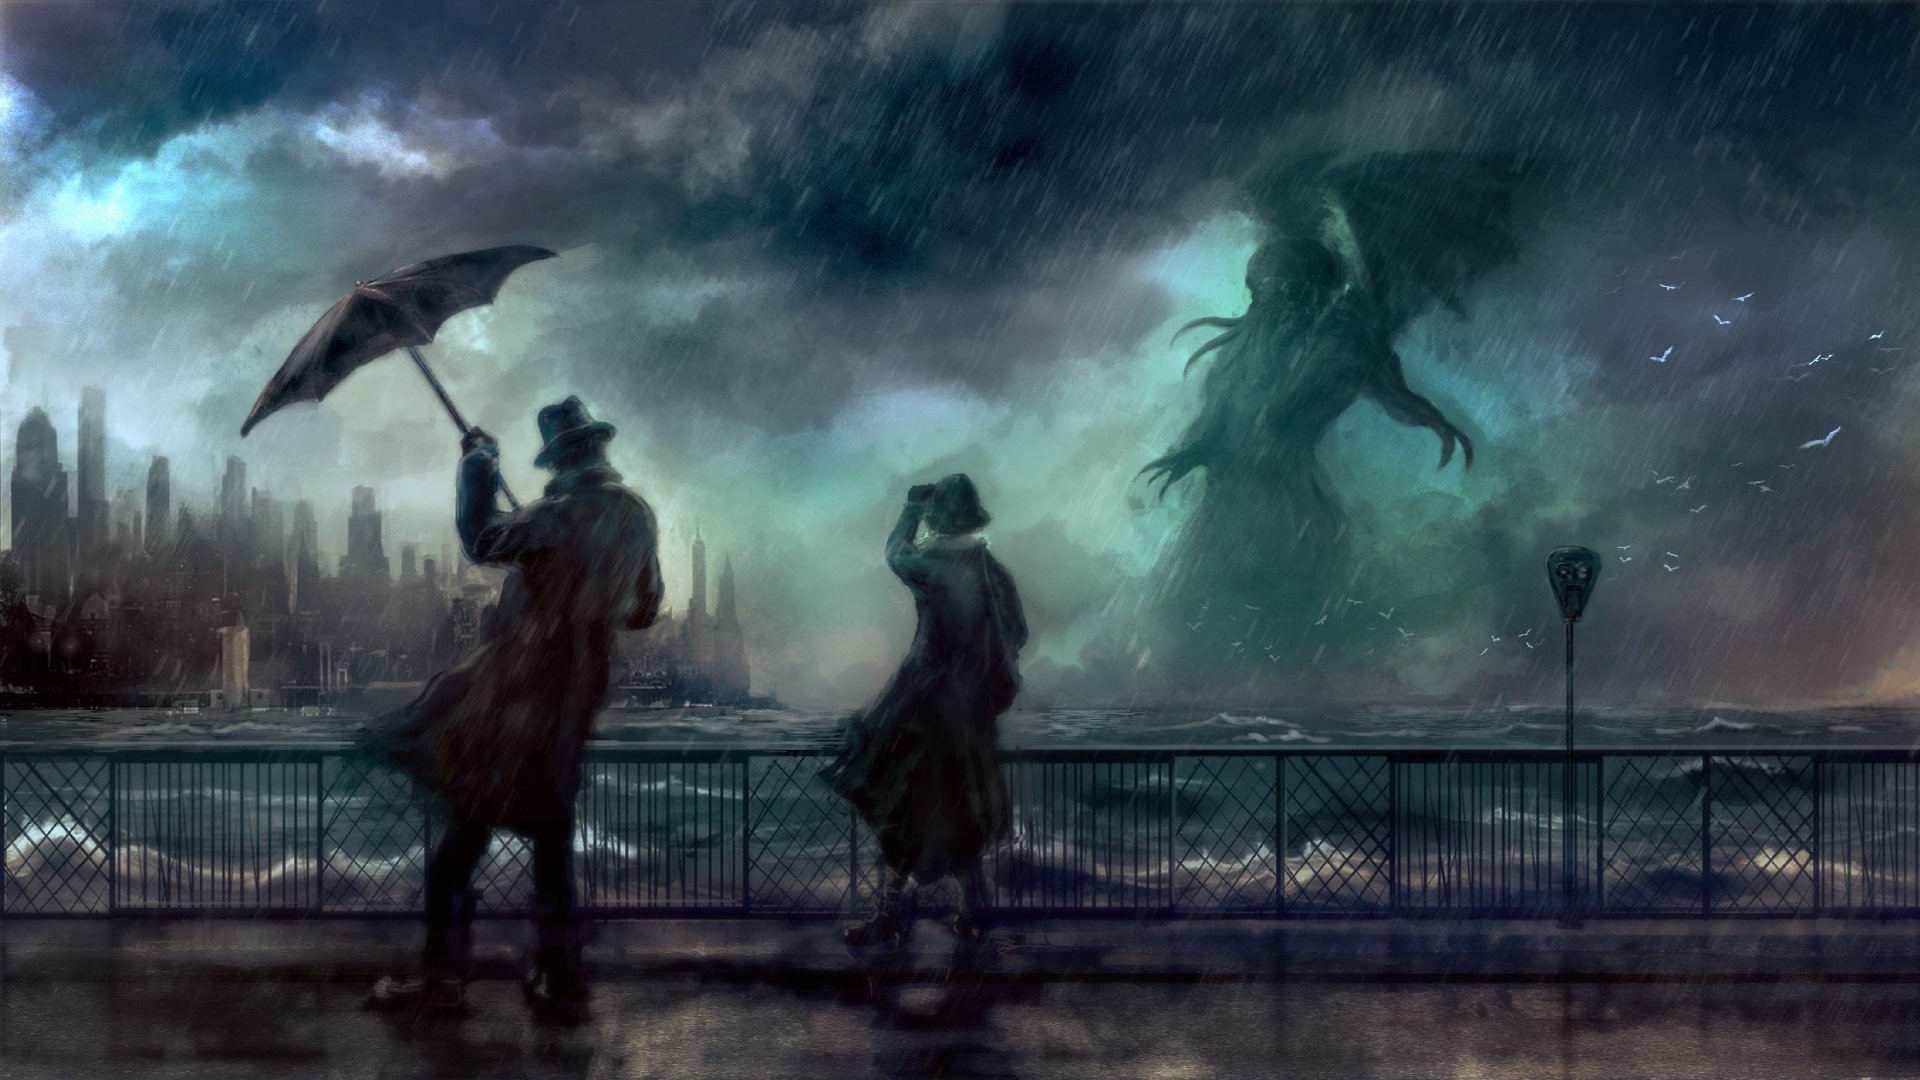 … artwork cthulhu wallpapers hd desktop and mobile backgrounds …